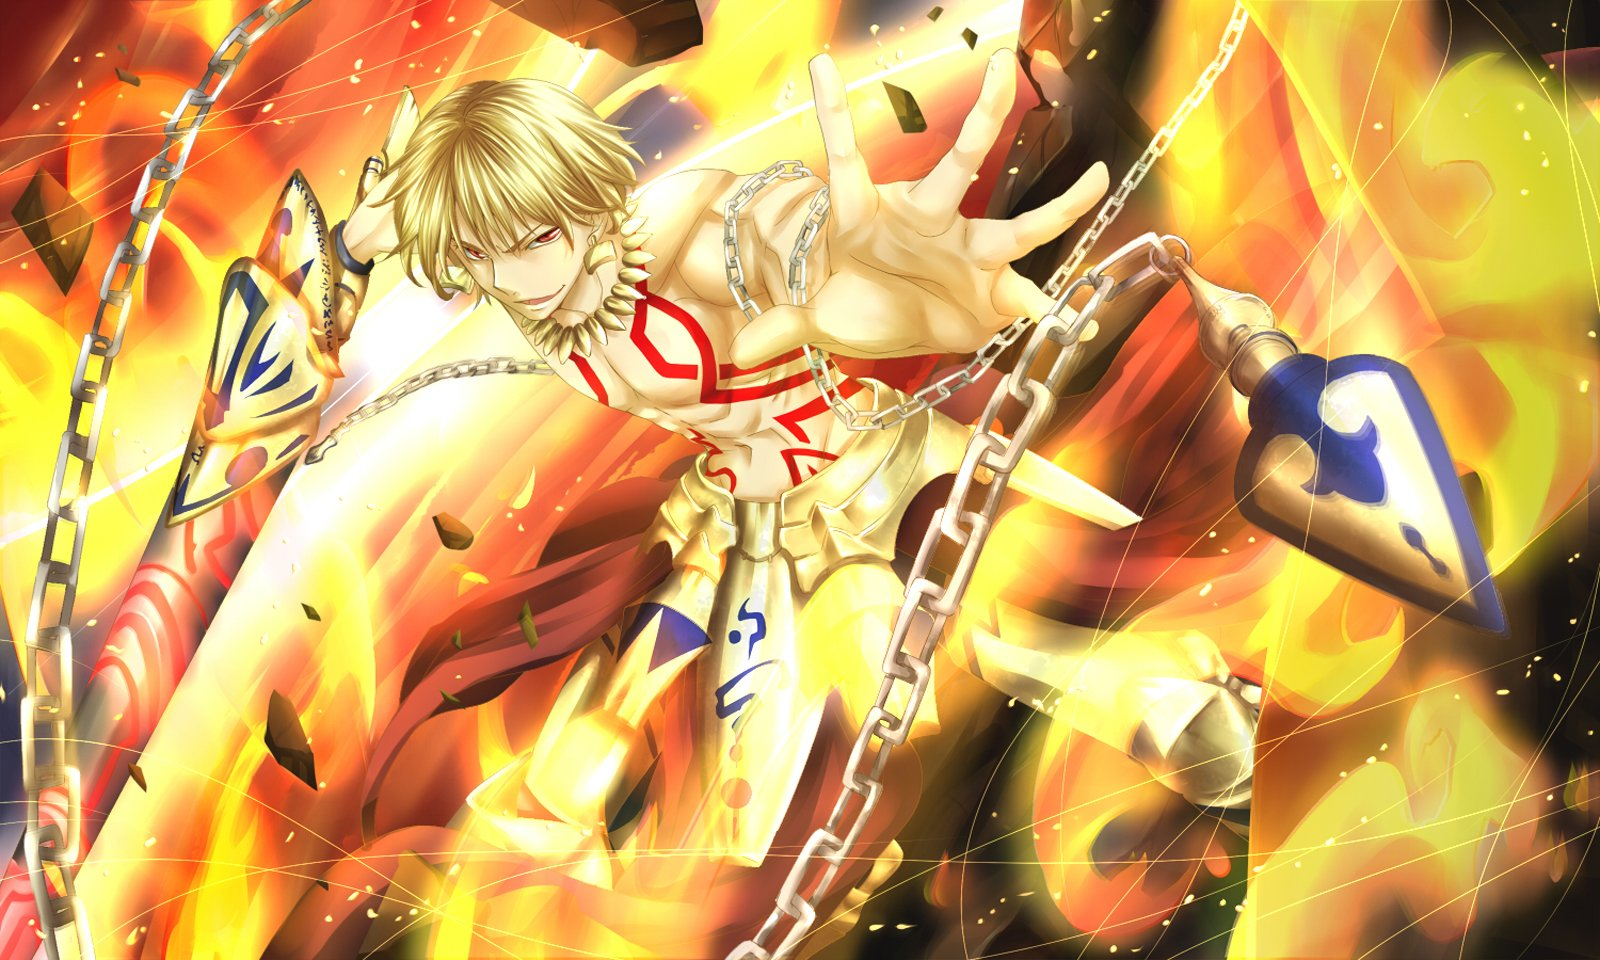 Gilgamesh Anime Fate Zero Gilgamesh fate stay night 1600x960